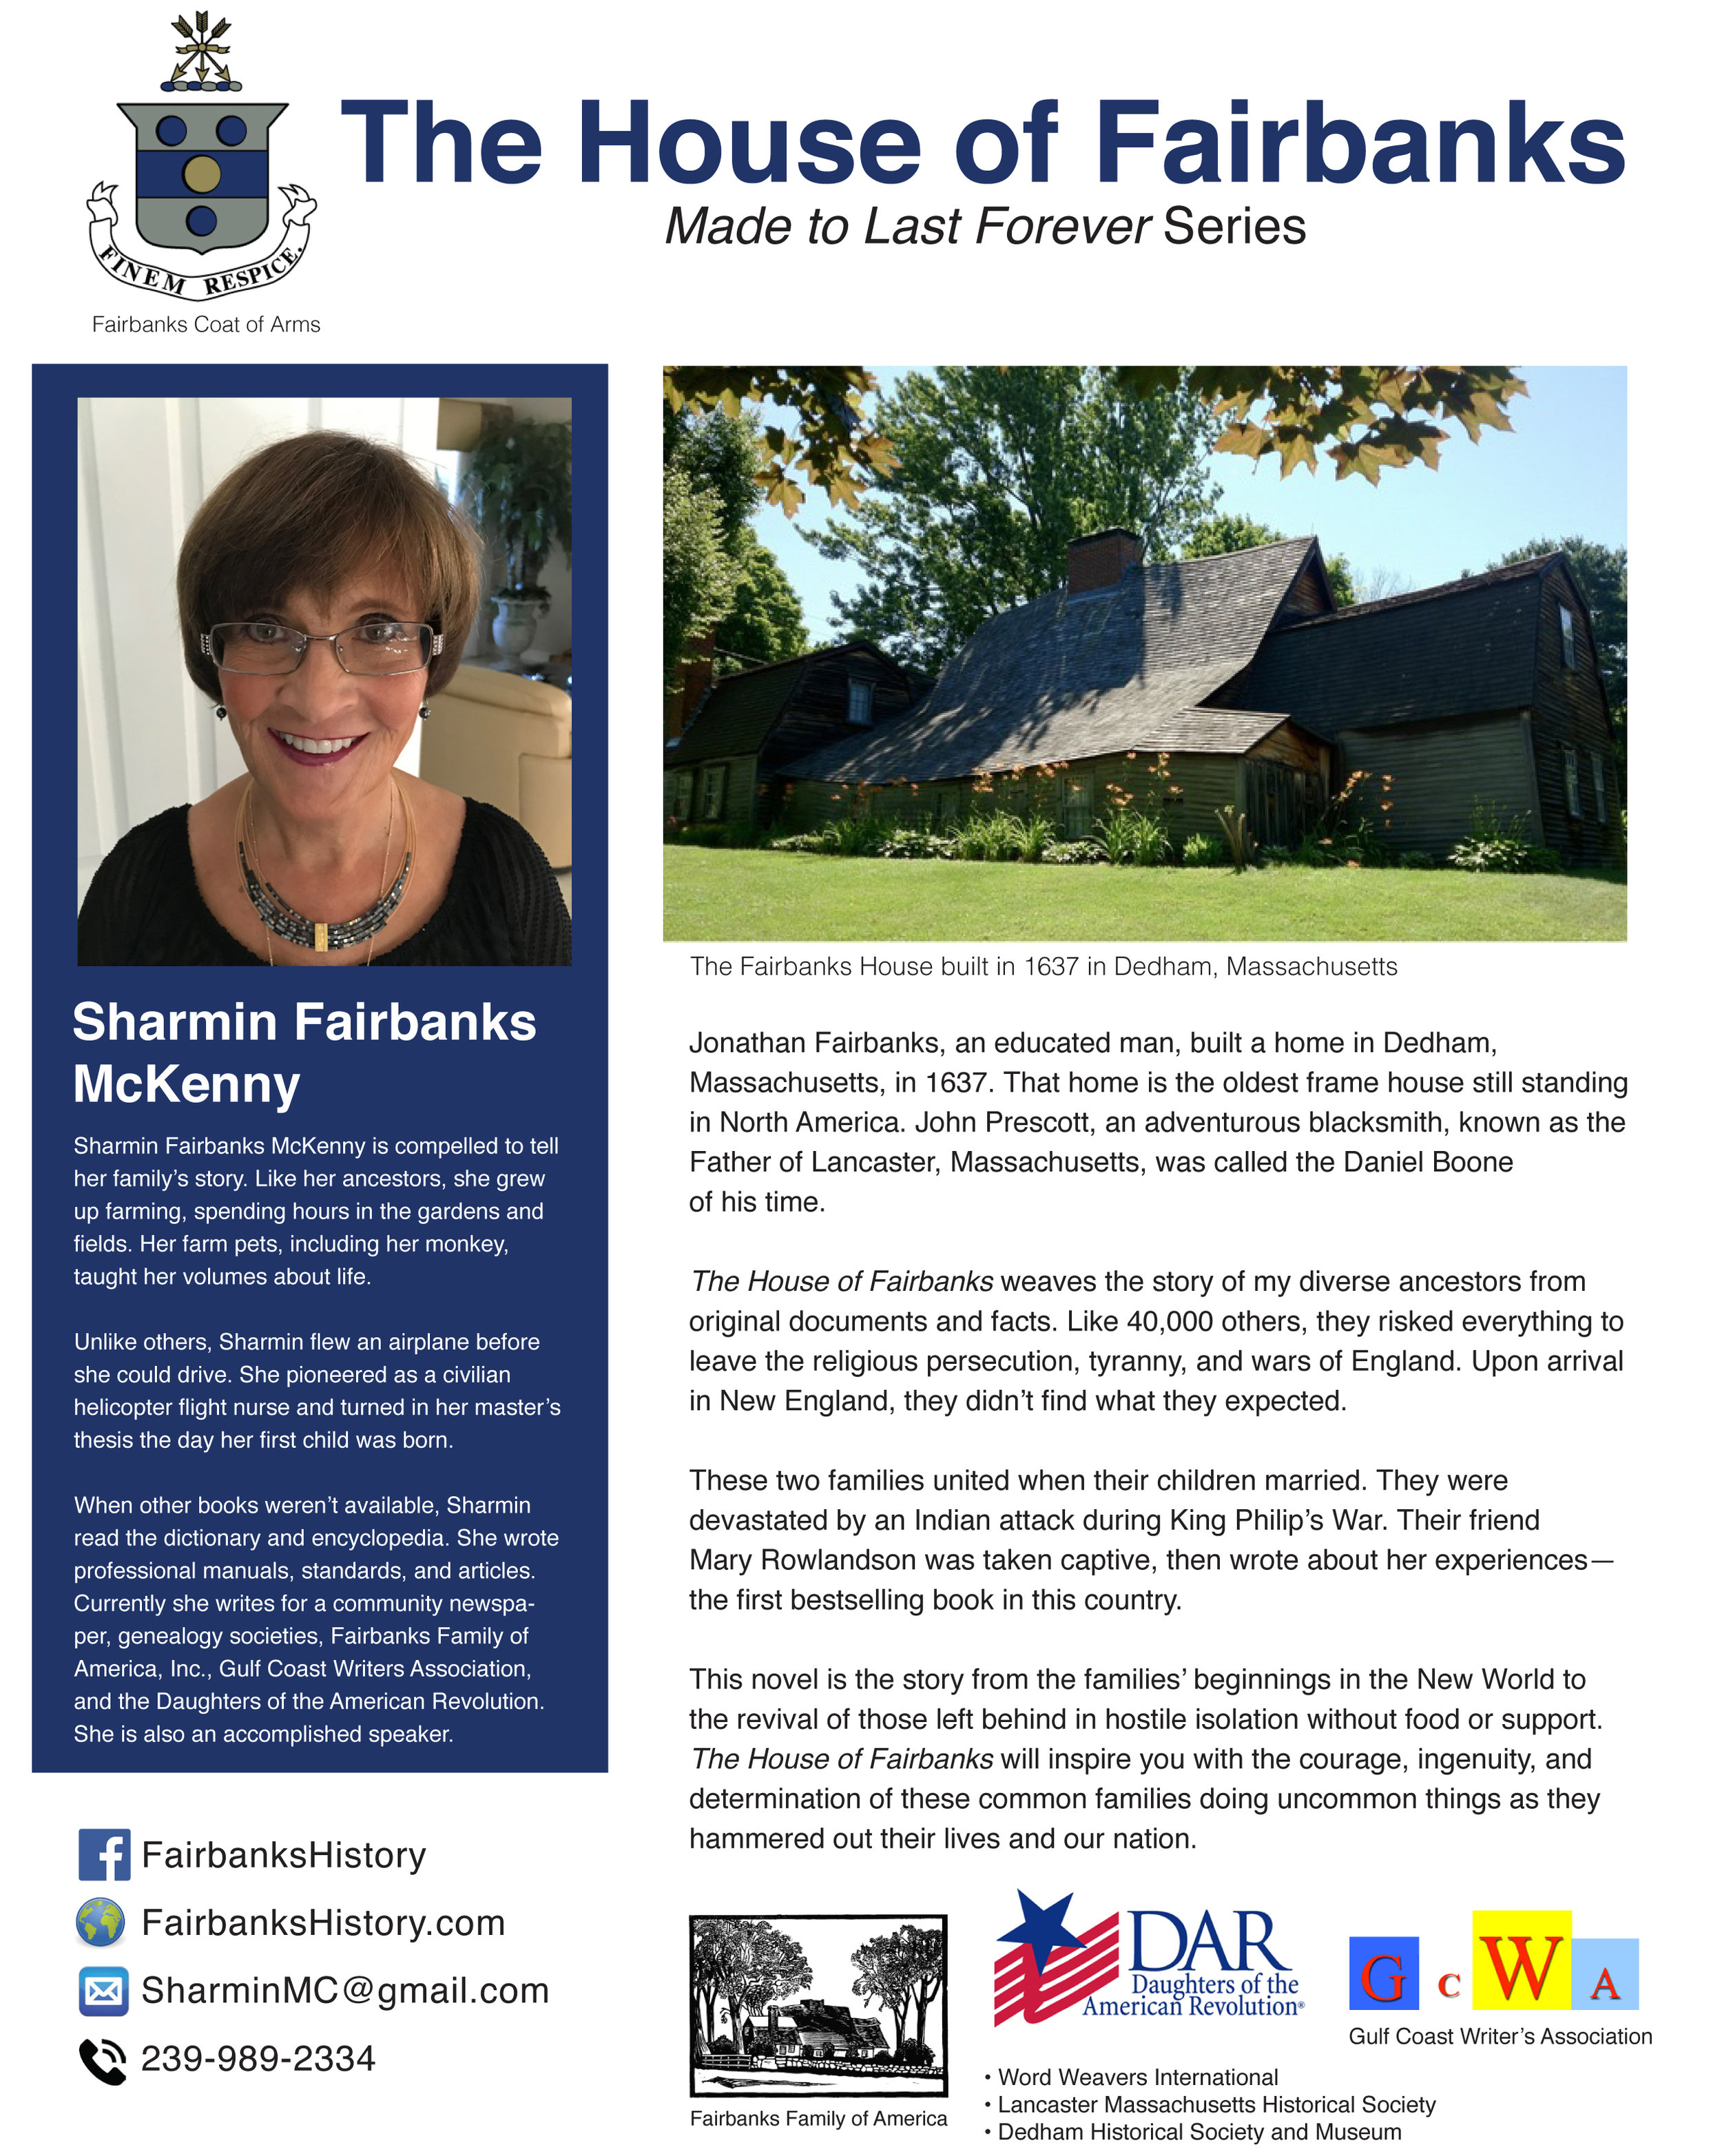 FairbankHistory Sharmin Fairbanks McKenny One Page